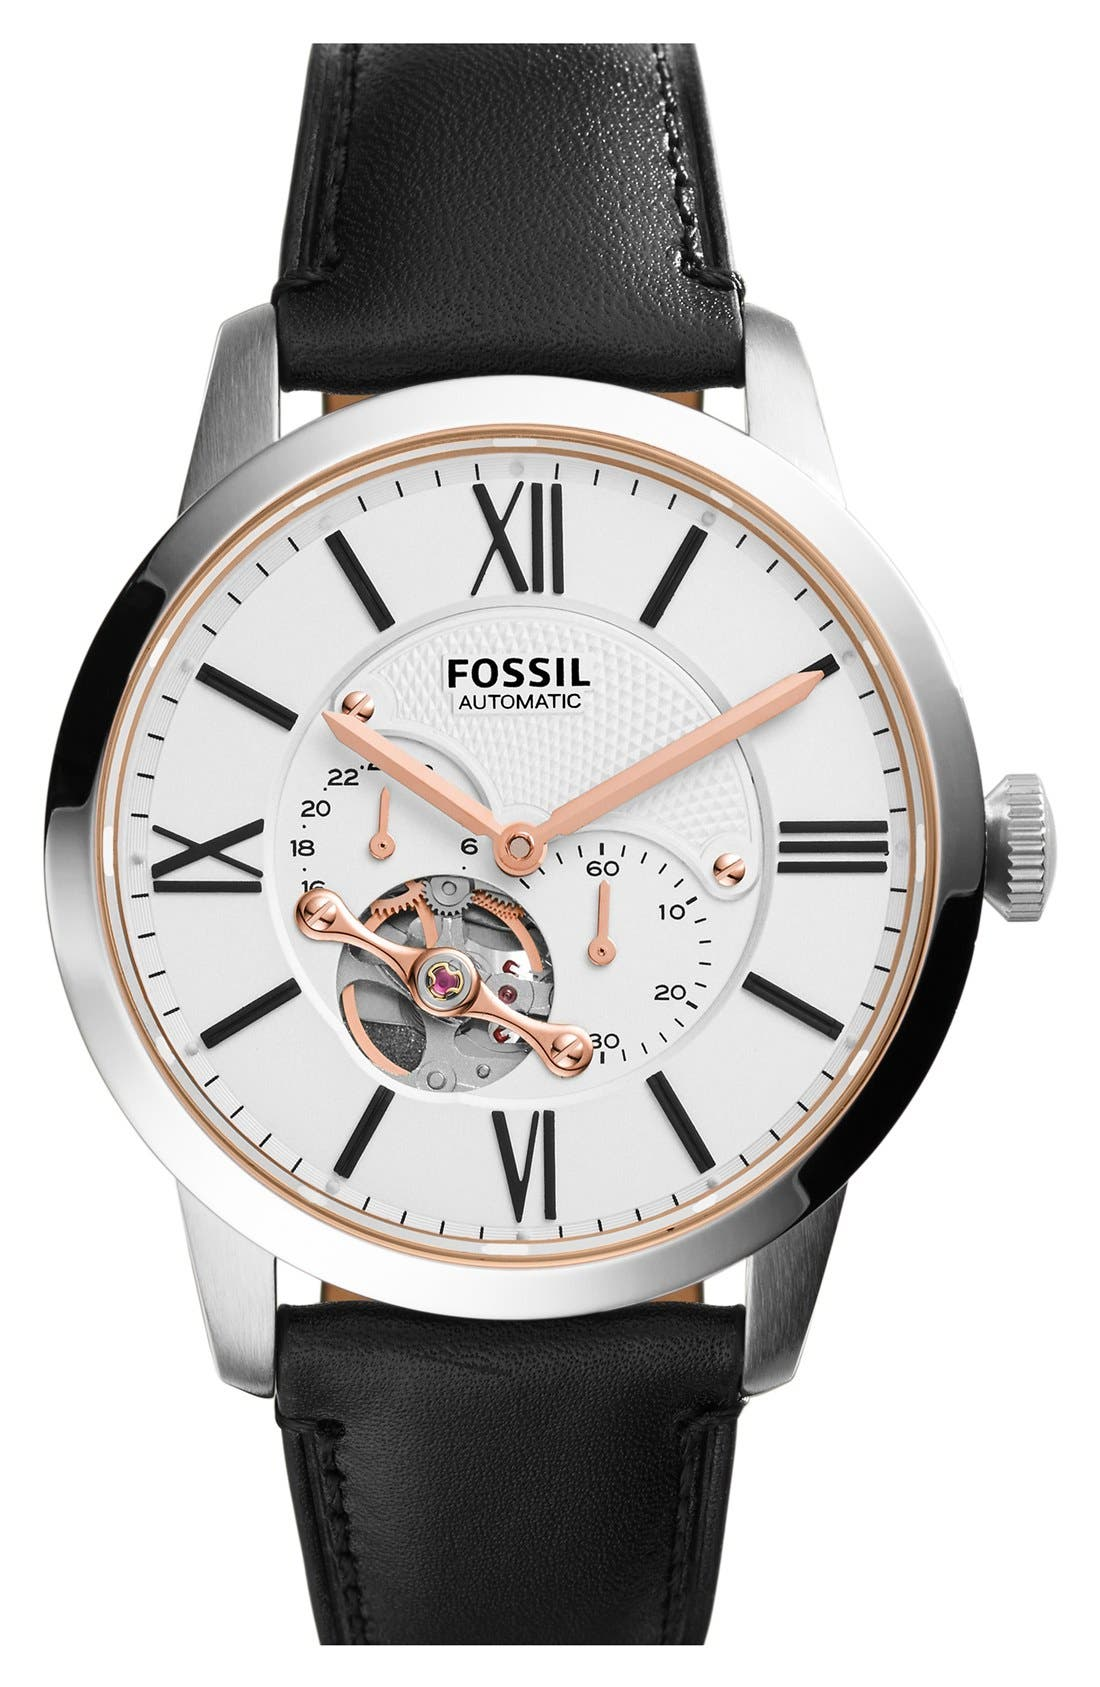 FOSSIL, 'Townsman' Automatic Leather Strap Watch, 44mm, Main thumbnail 1, color, 001